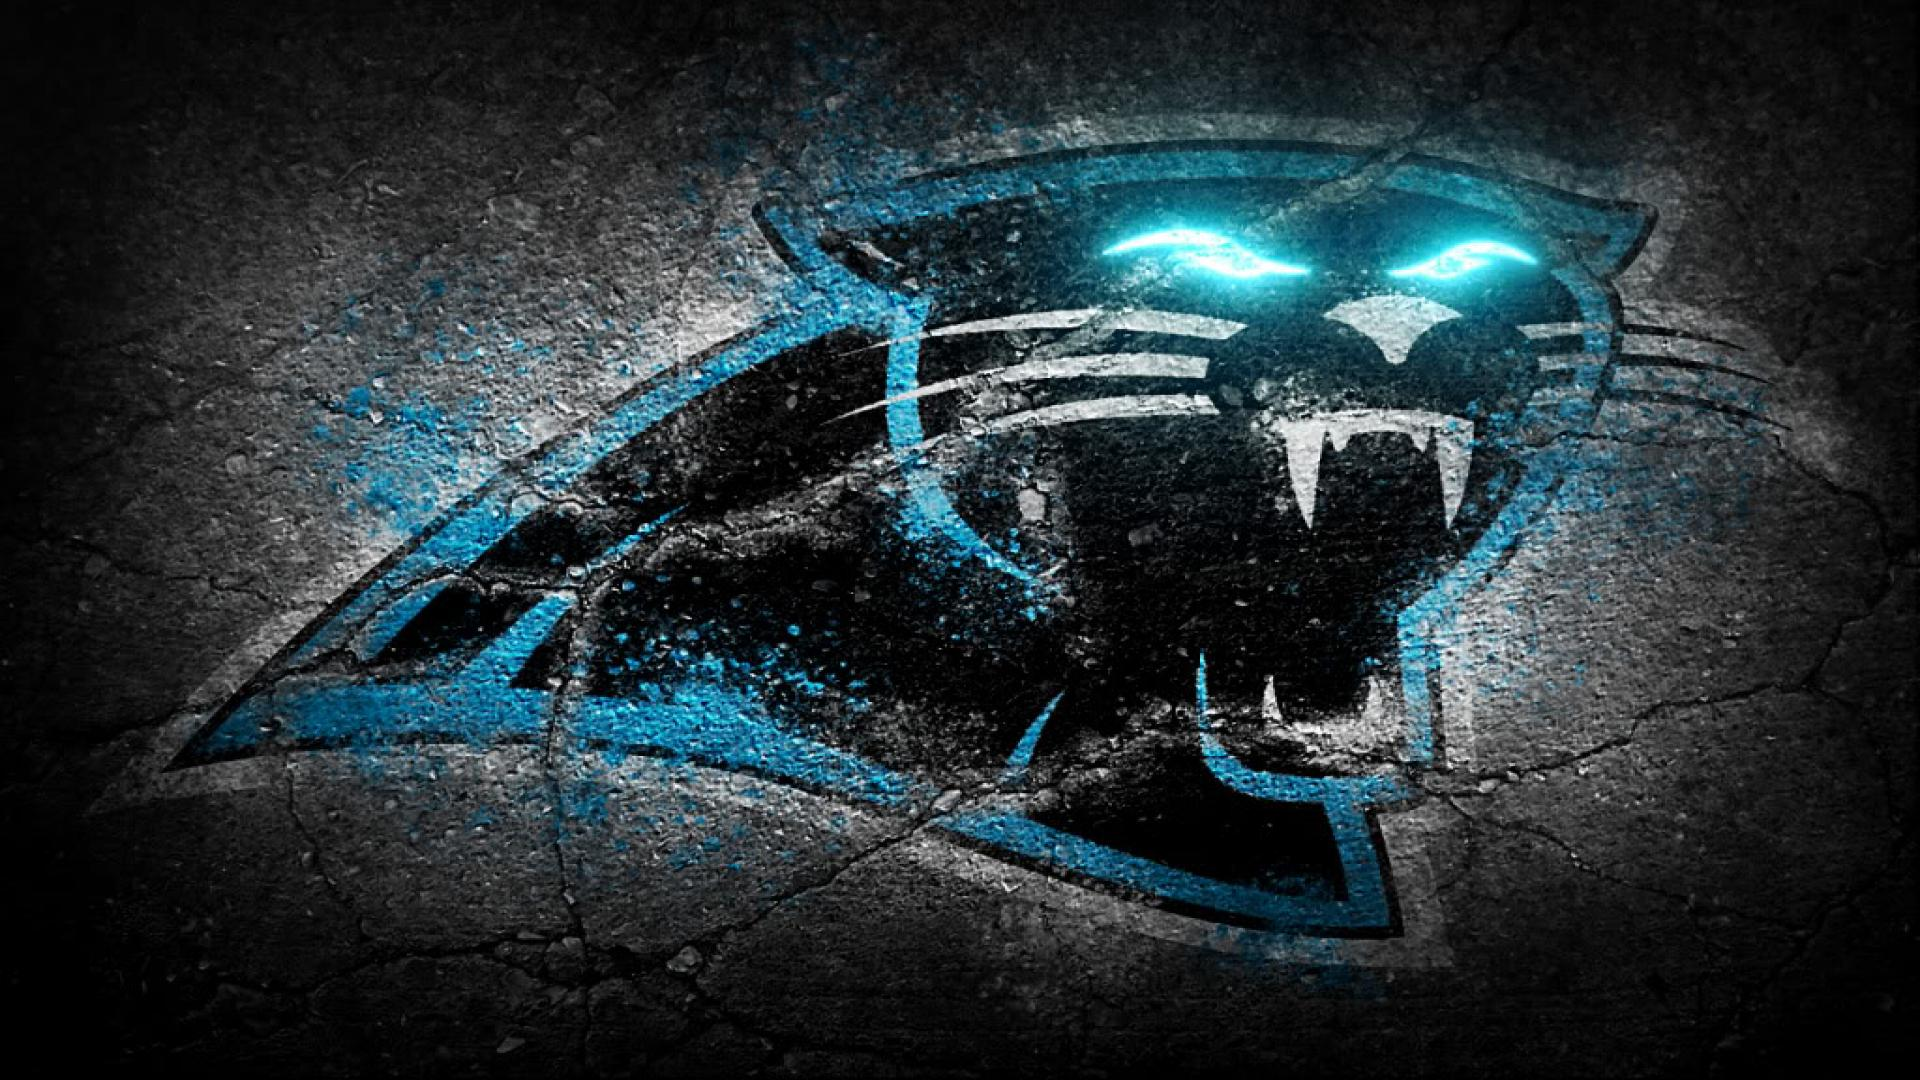 Wallpaperwiki Carolina Panthers Logo Of Team 1920x1080 PIC